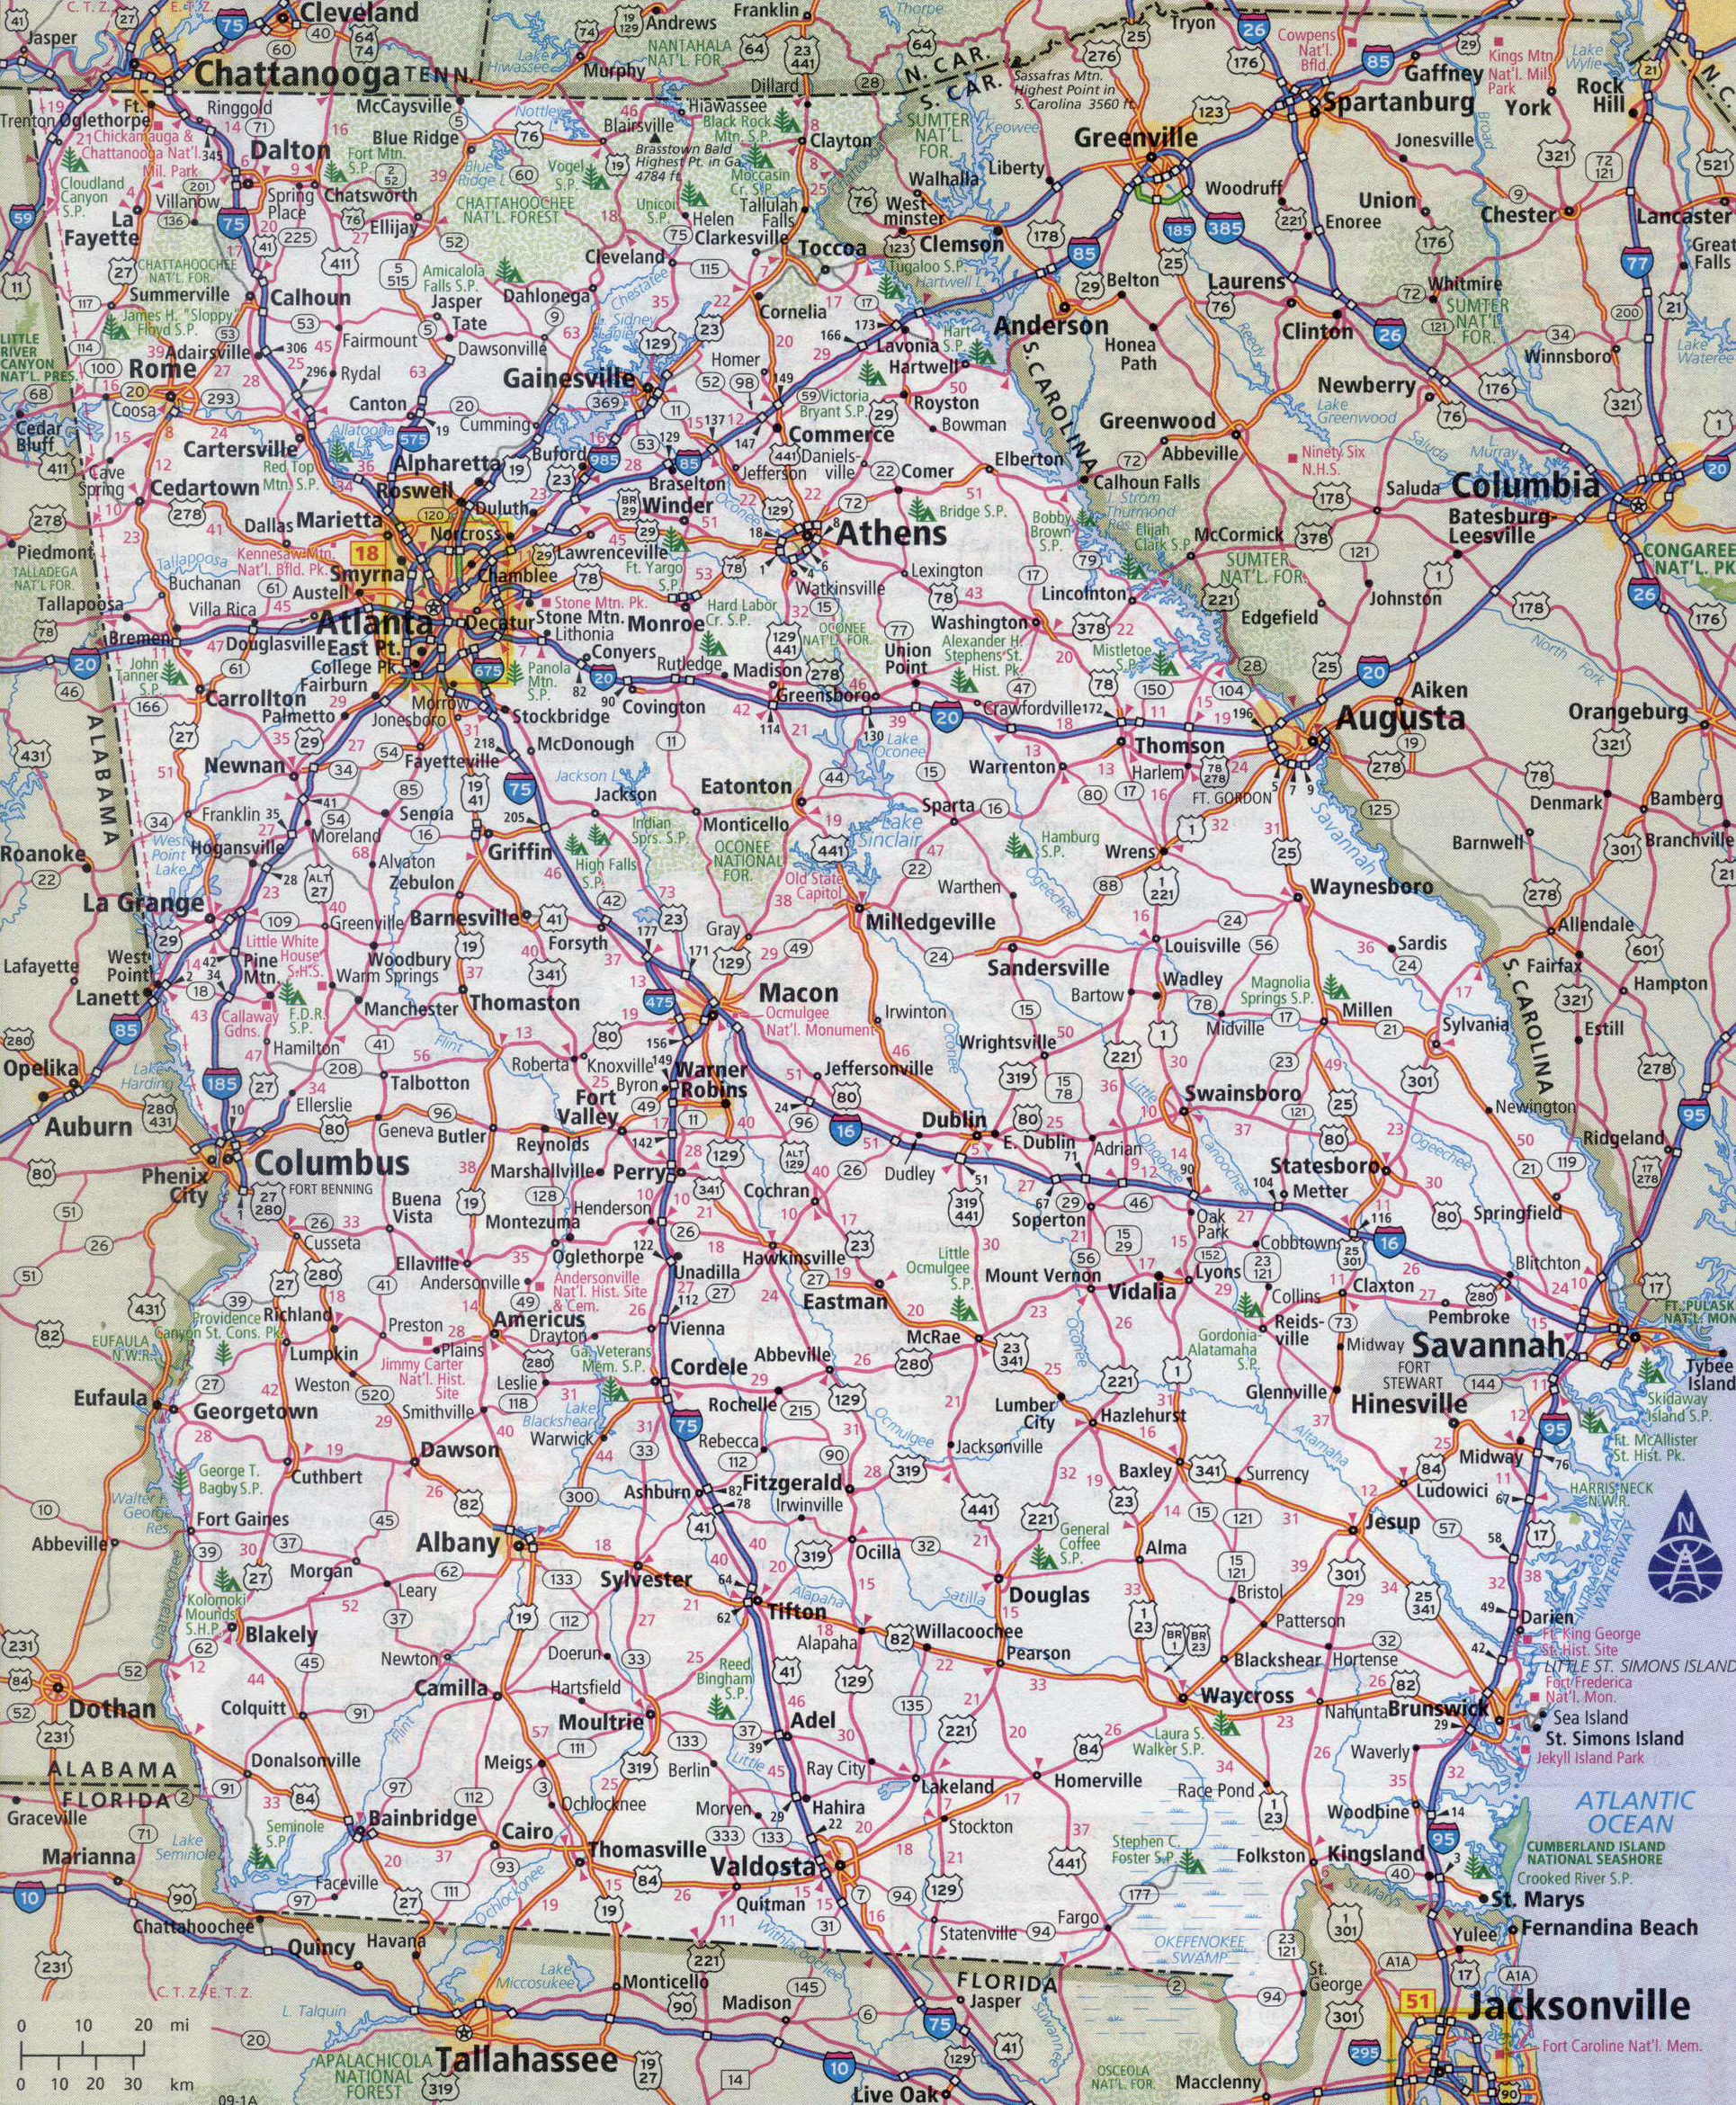 Large detailed roads and highways map of Georgia state with ... on georgia coat of arms usa, georgia people usa, georgia south america, georgia flag usa, georgia interesting places usa, georgia cartoon, north carolina, georgia state bird usa, ghost towns in georgia usa, south georgia usa, south carolina, home usa, georgia travel usa, georgia climate usa, georgia state america, georgia food usa, georgia history usa, new jersey, georgia city usa, new york, georgia borders,